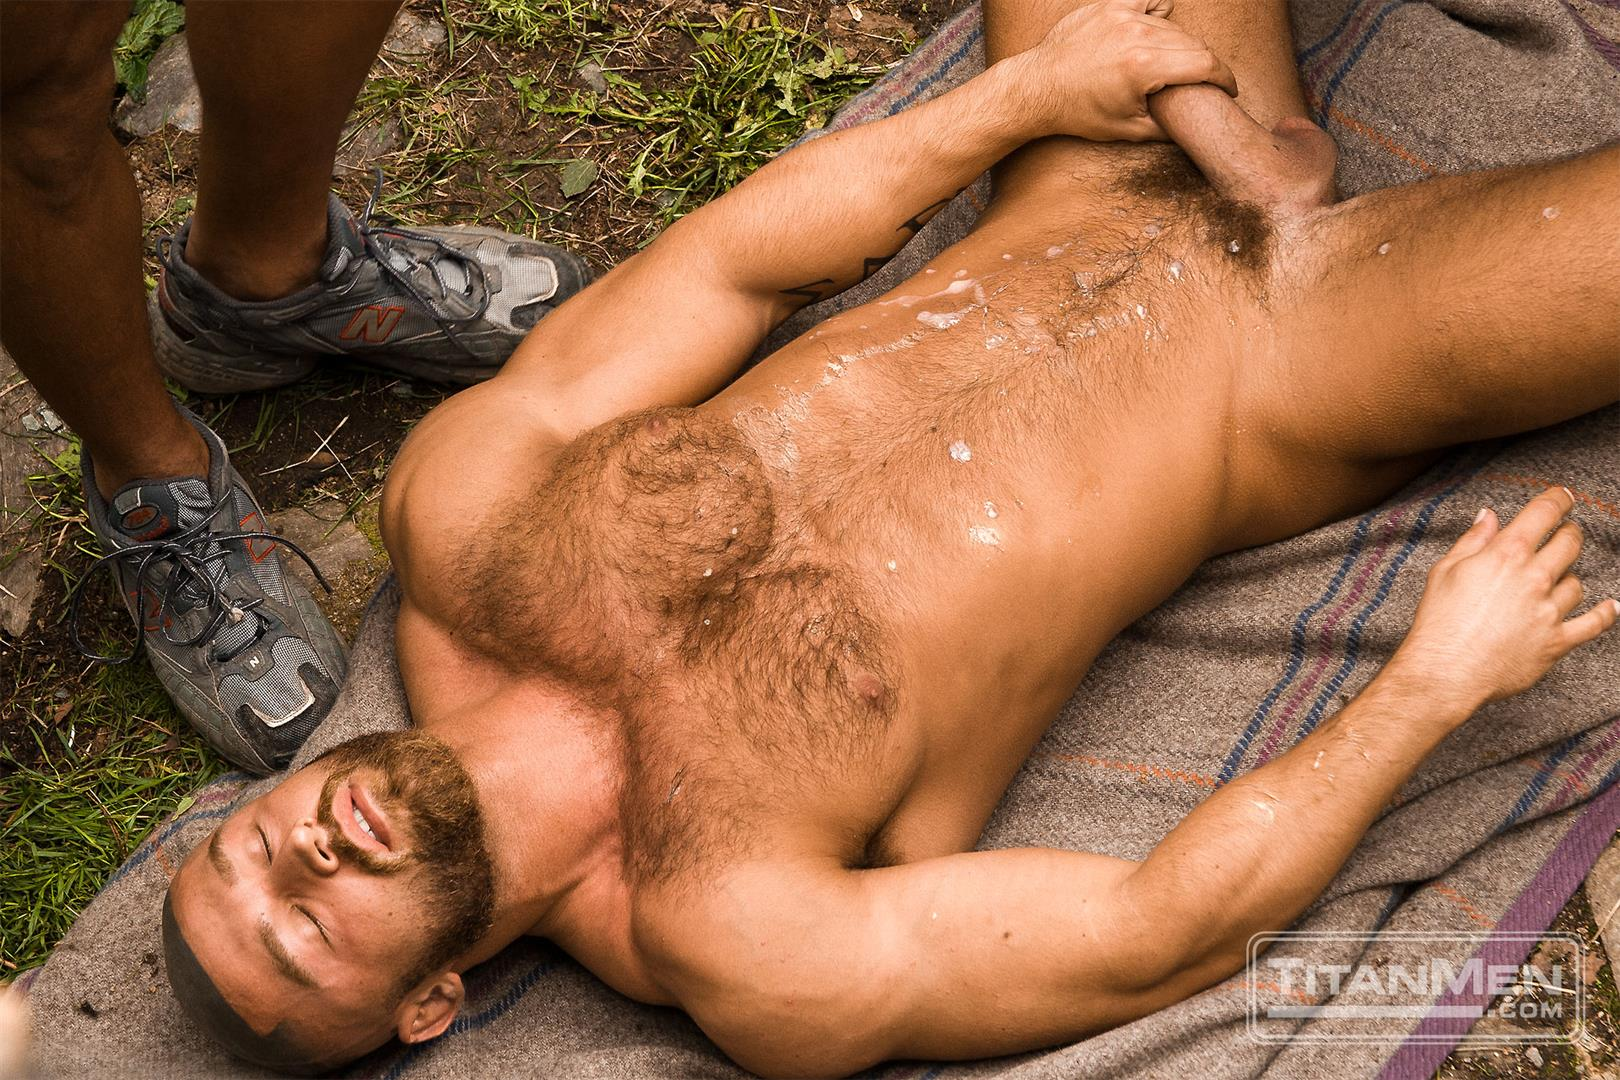 TitanMen-Cum-Shots-from-Hairy-Muscle-Hunks-Amateur-Gay-Porn-6 One Video and A Gallon Of Hot Cum